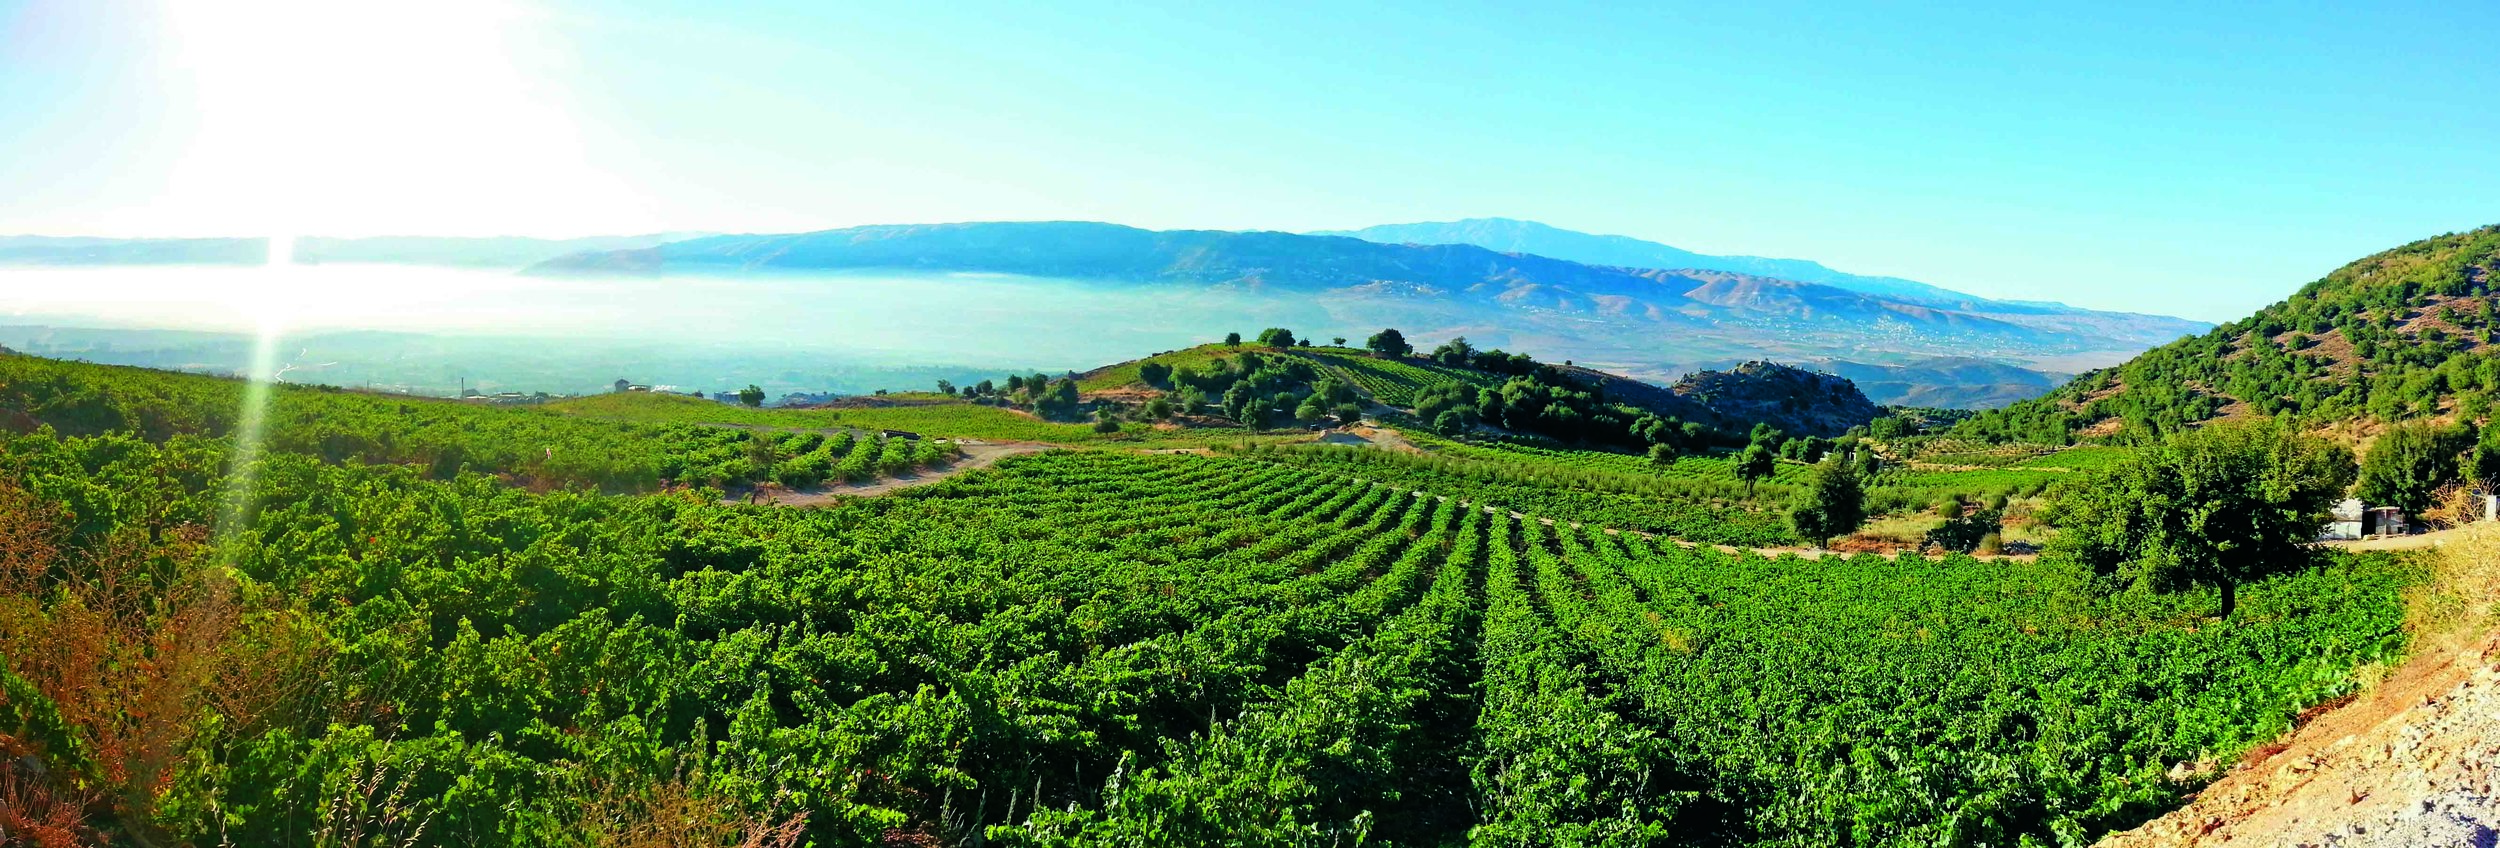 A Vineyard site in Lebanon